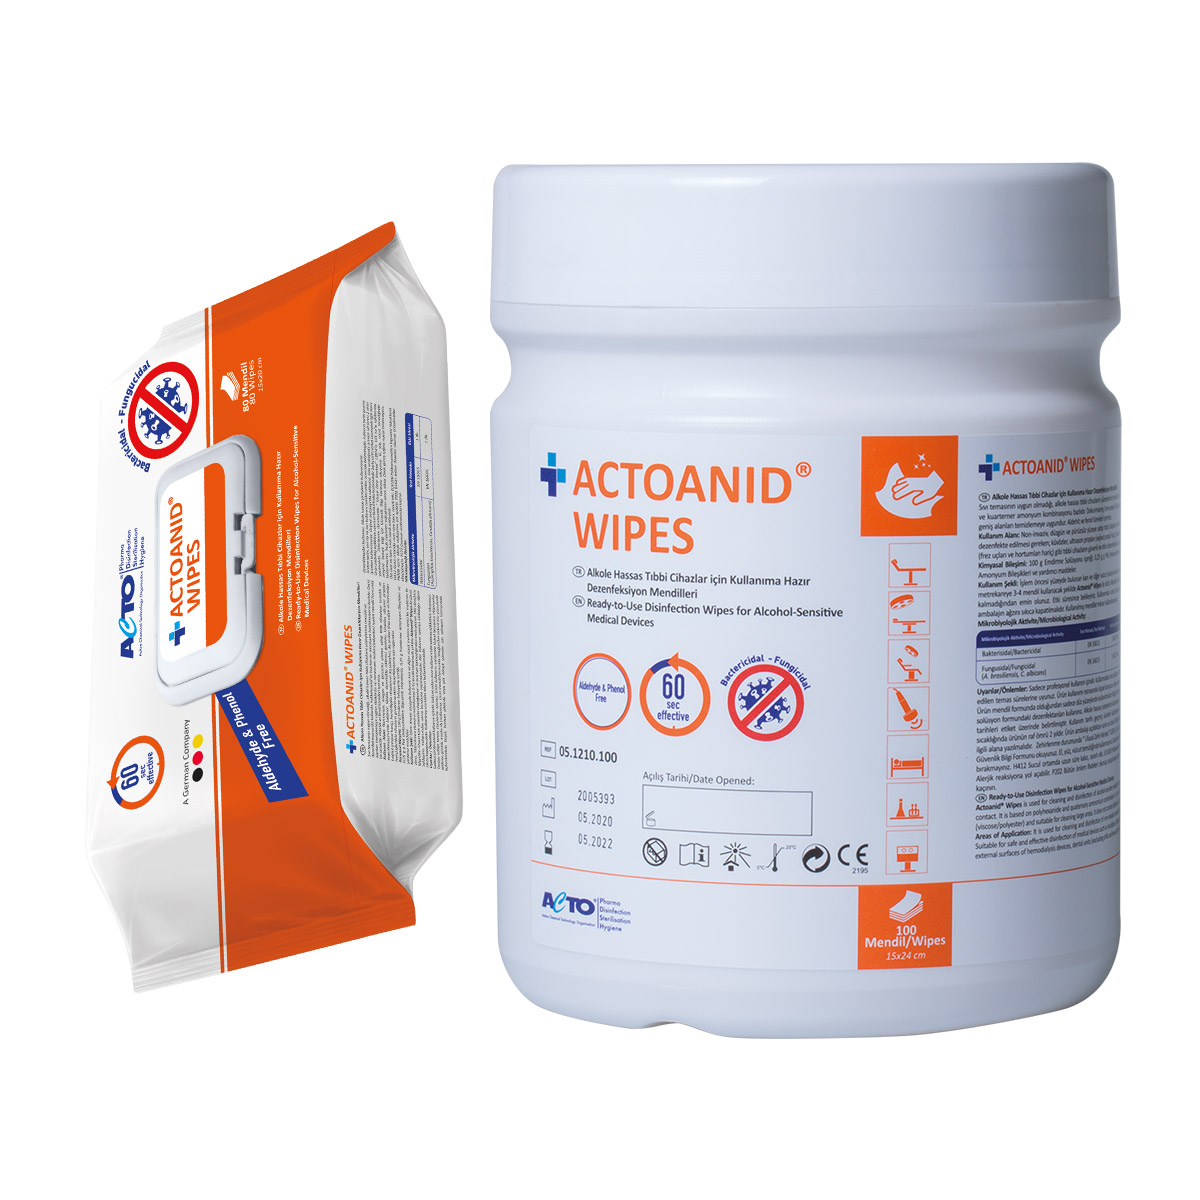 Actoanid Wipes